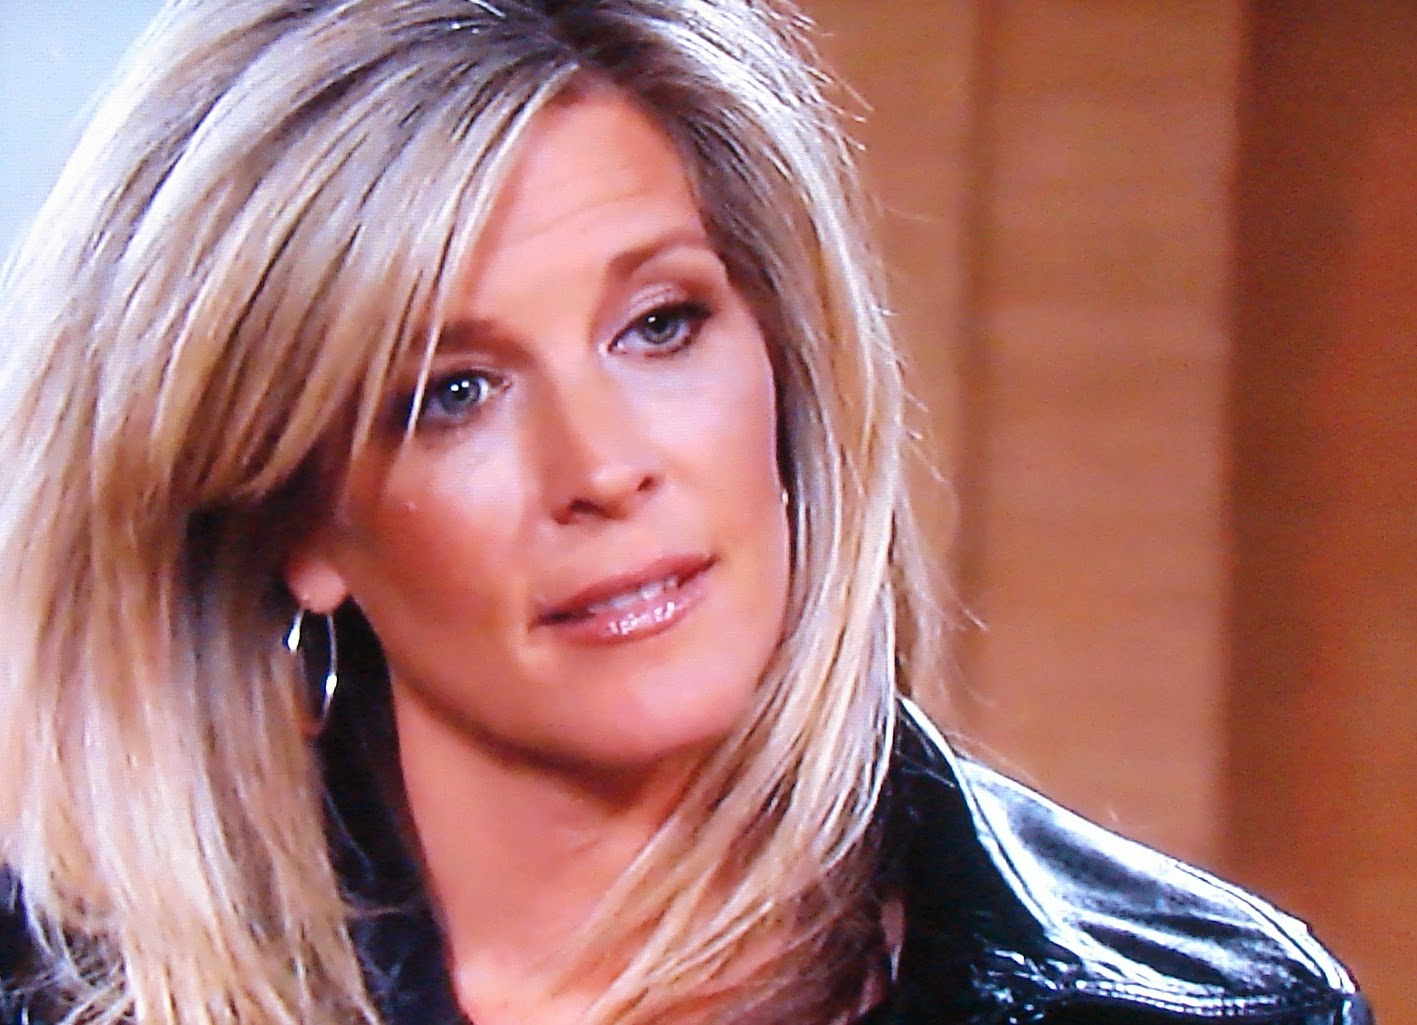 Who is carly hookup on general hospital